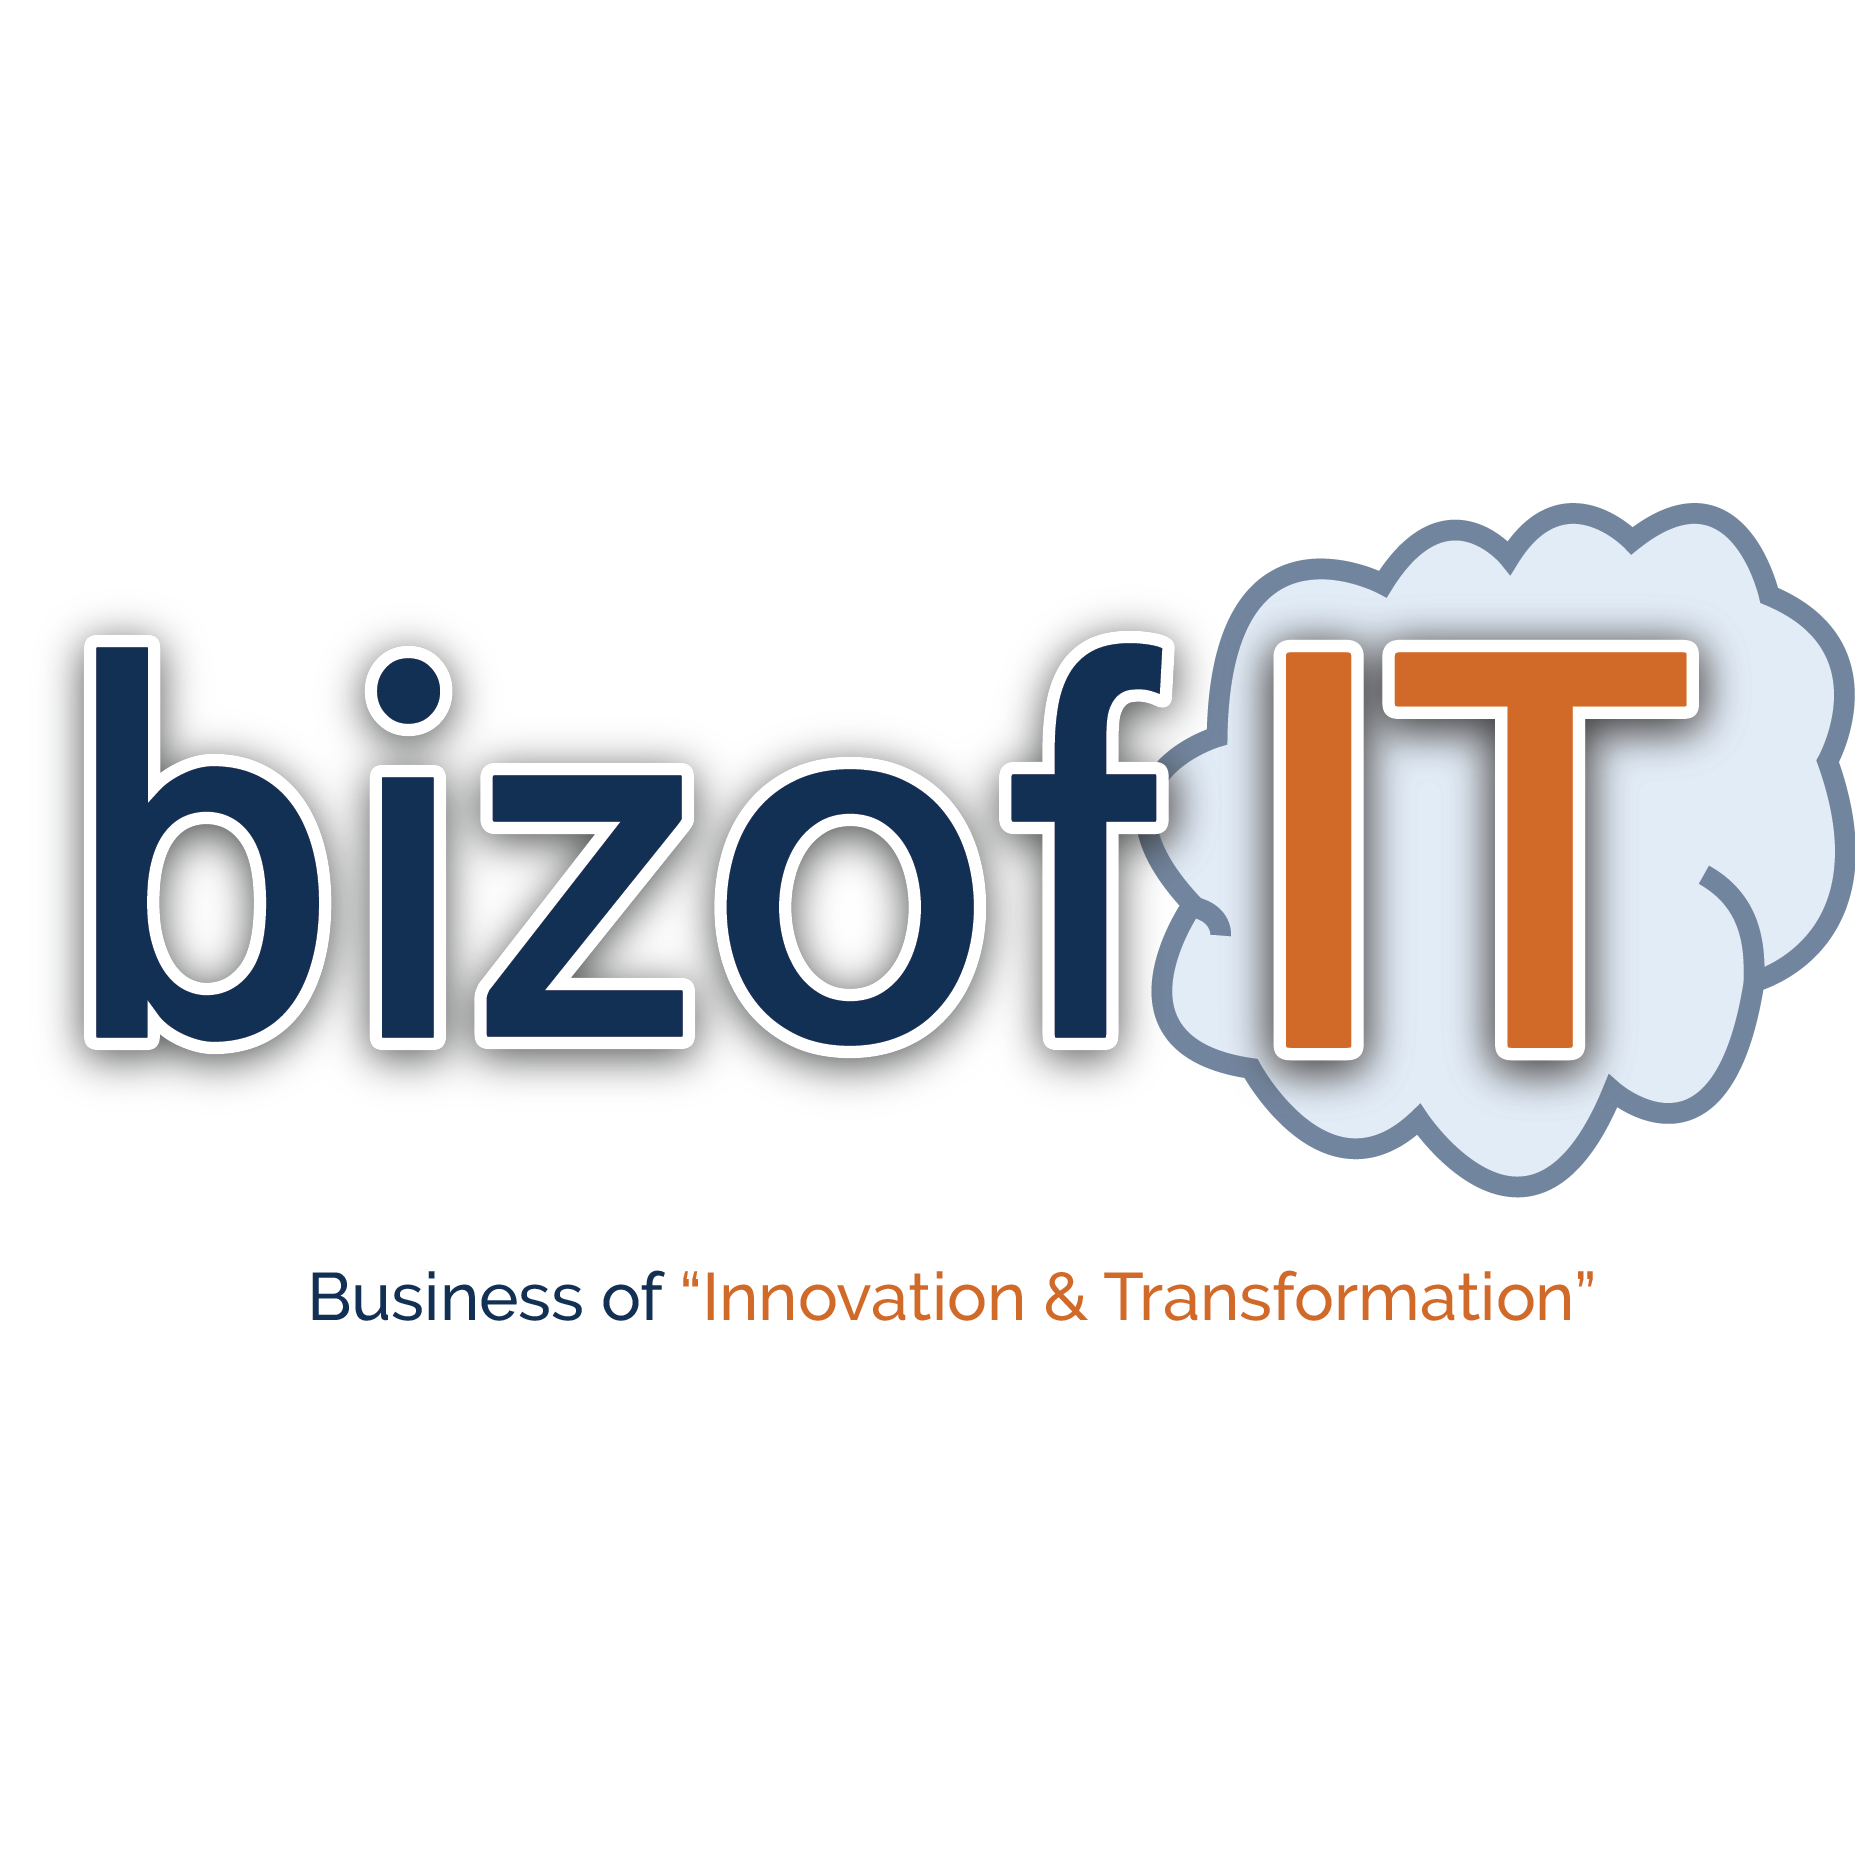 Biz of IT Innovations - Best Open Innovation Platform and Network